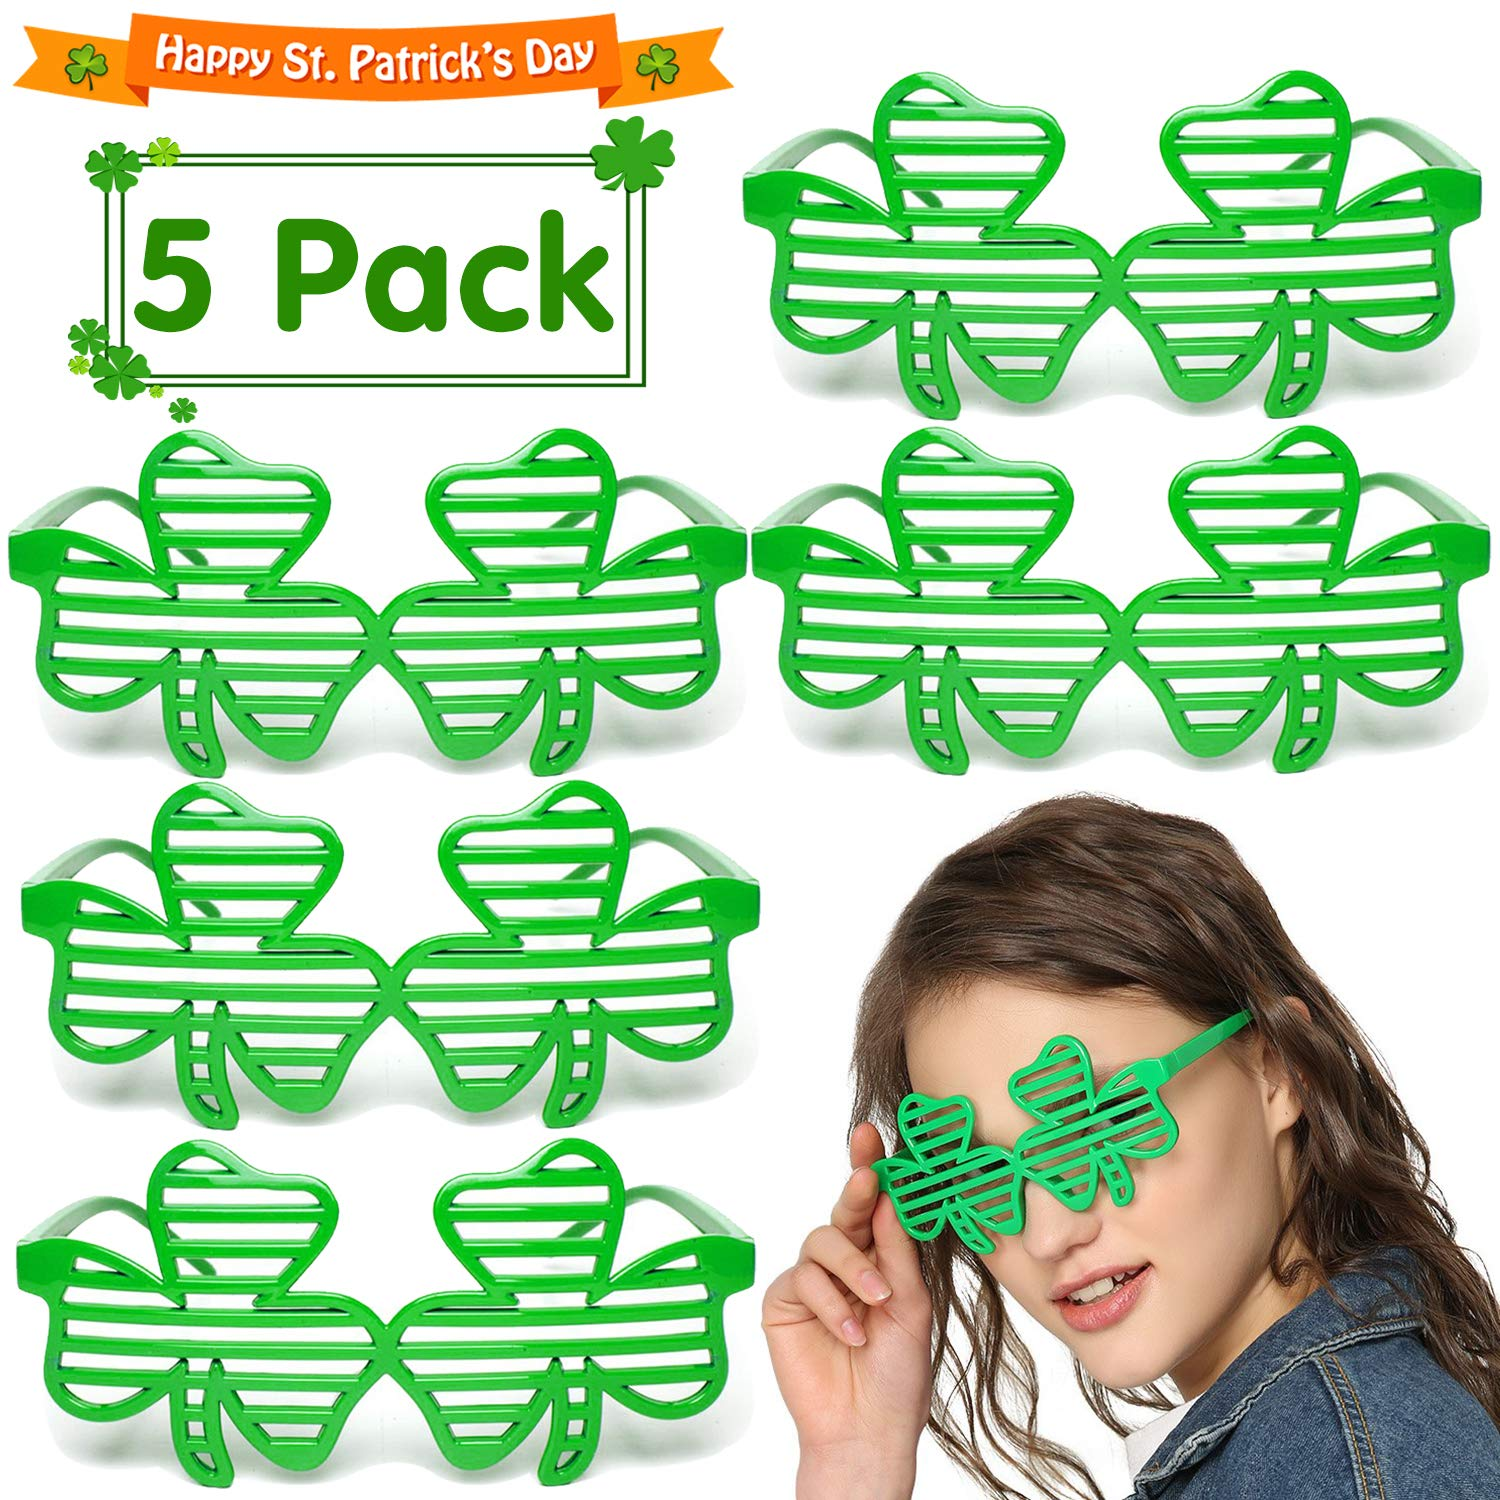 5 Pack Shamrock Sunglasses St Patricks Day Party Favors Supplies